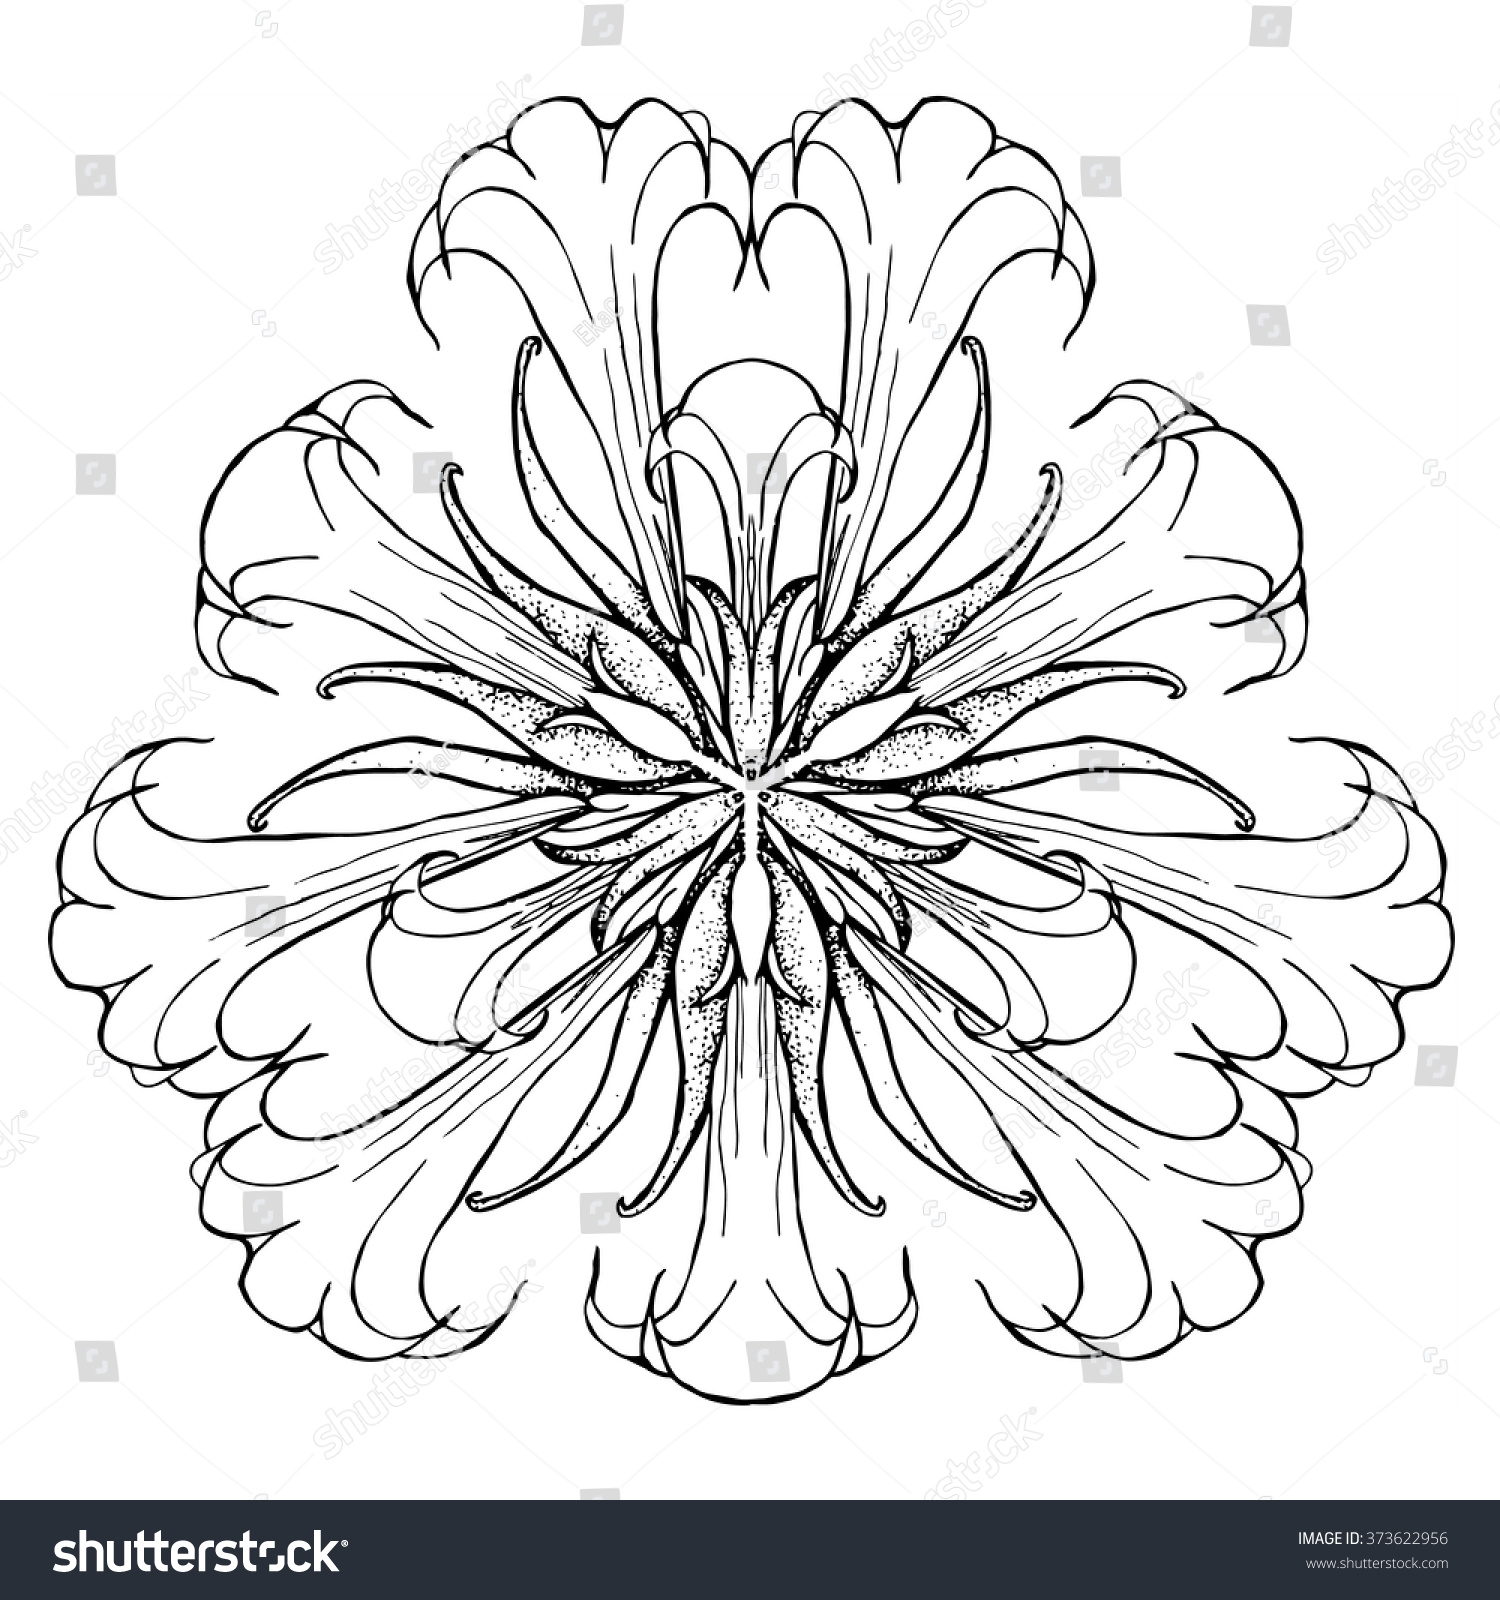 abstract coloring page flower mandala stock vector 373622956